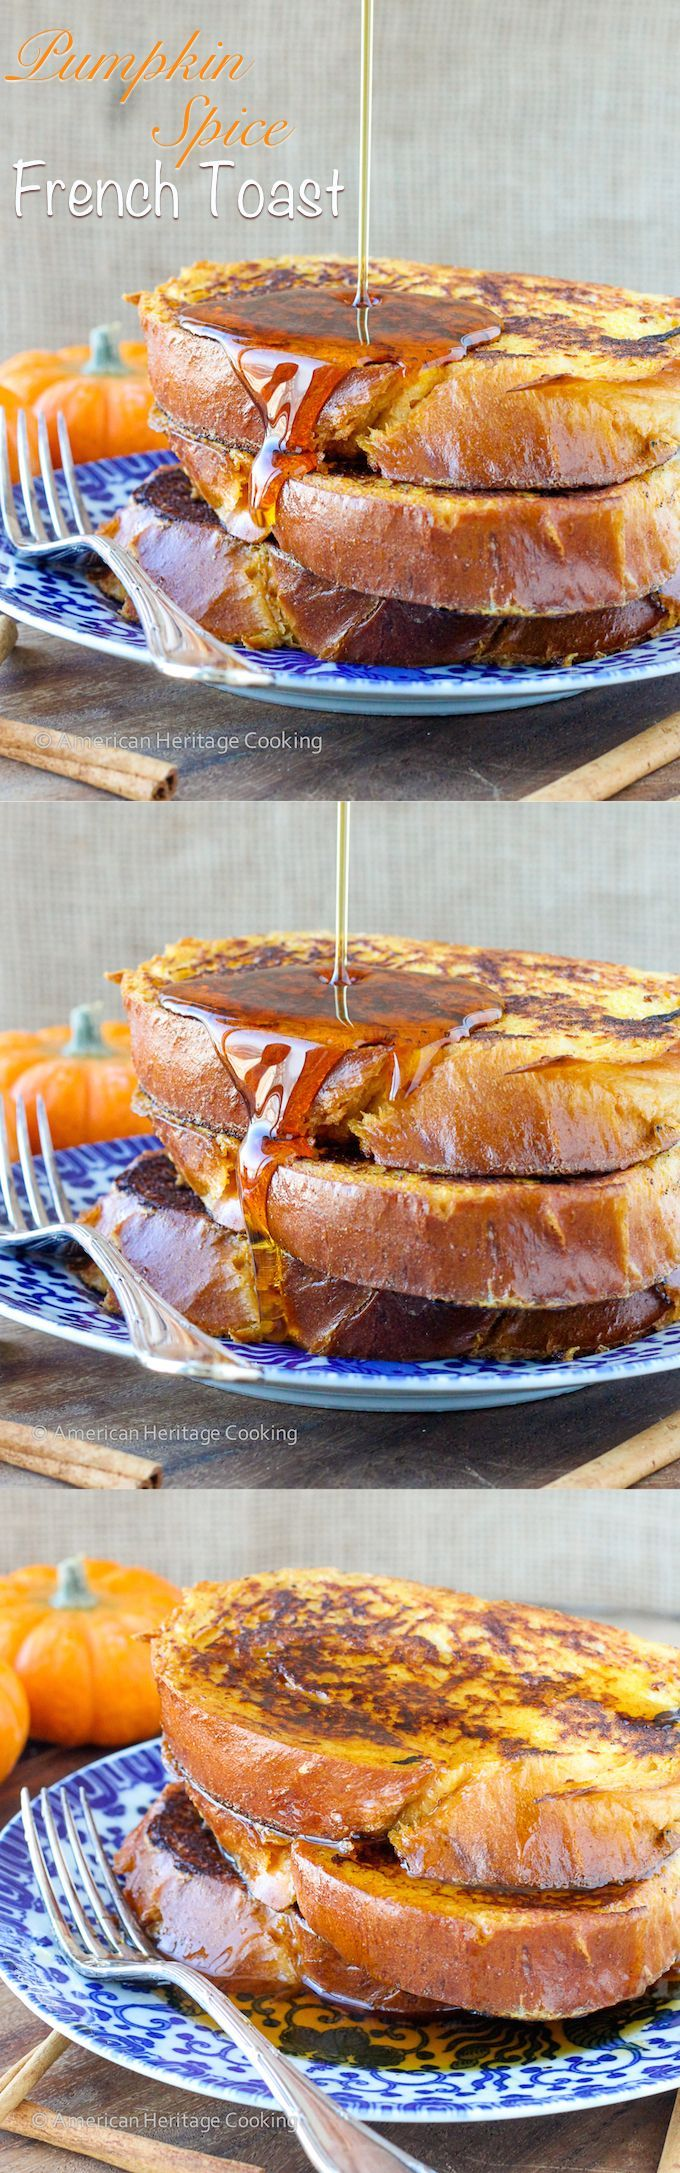 Pumpkin Spice French Toast   A V-Day Breakfast recipe for TWO! Or your easiest Valentine's Day Dinner yet!